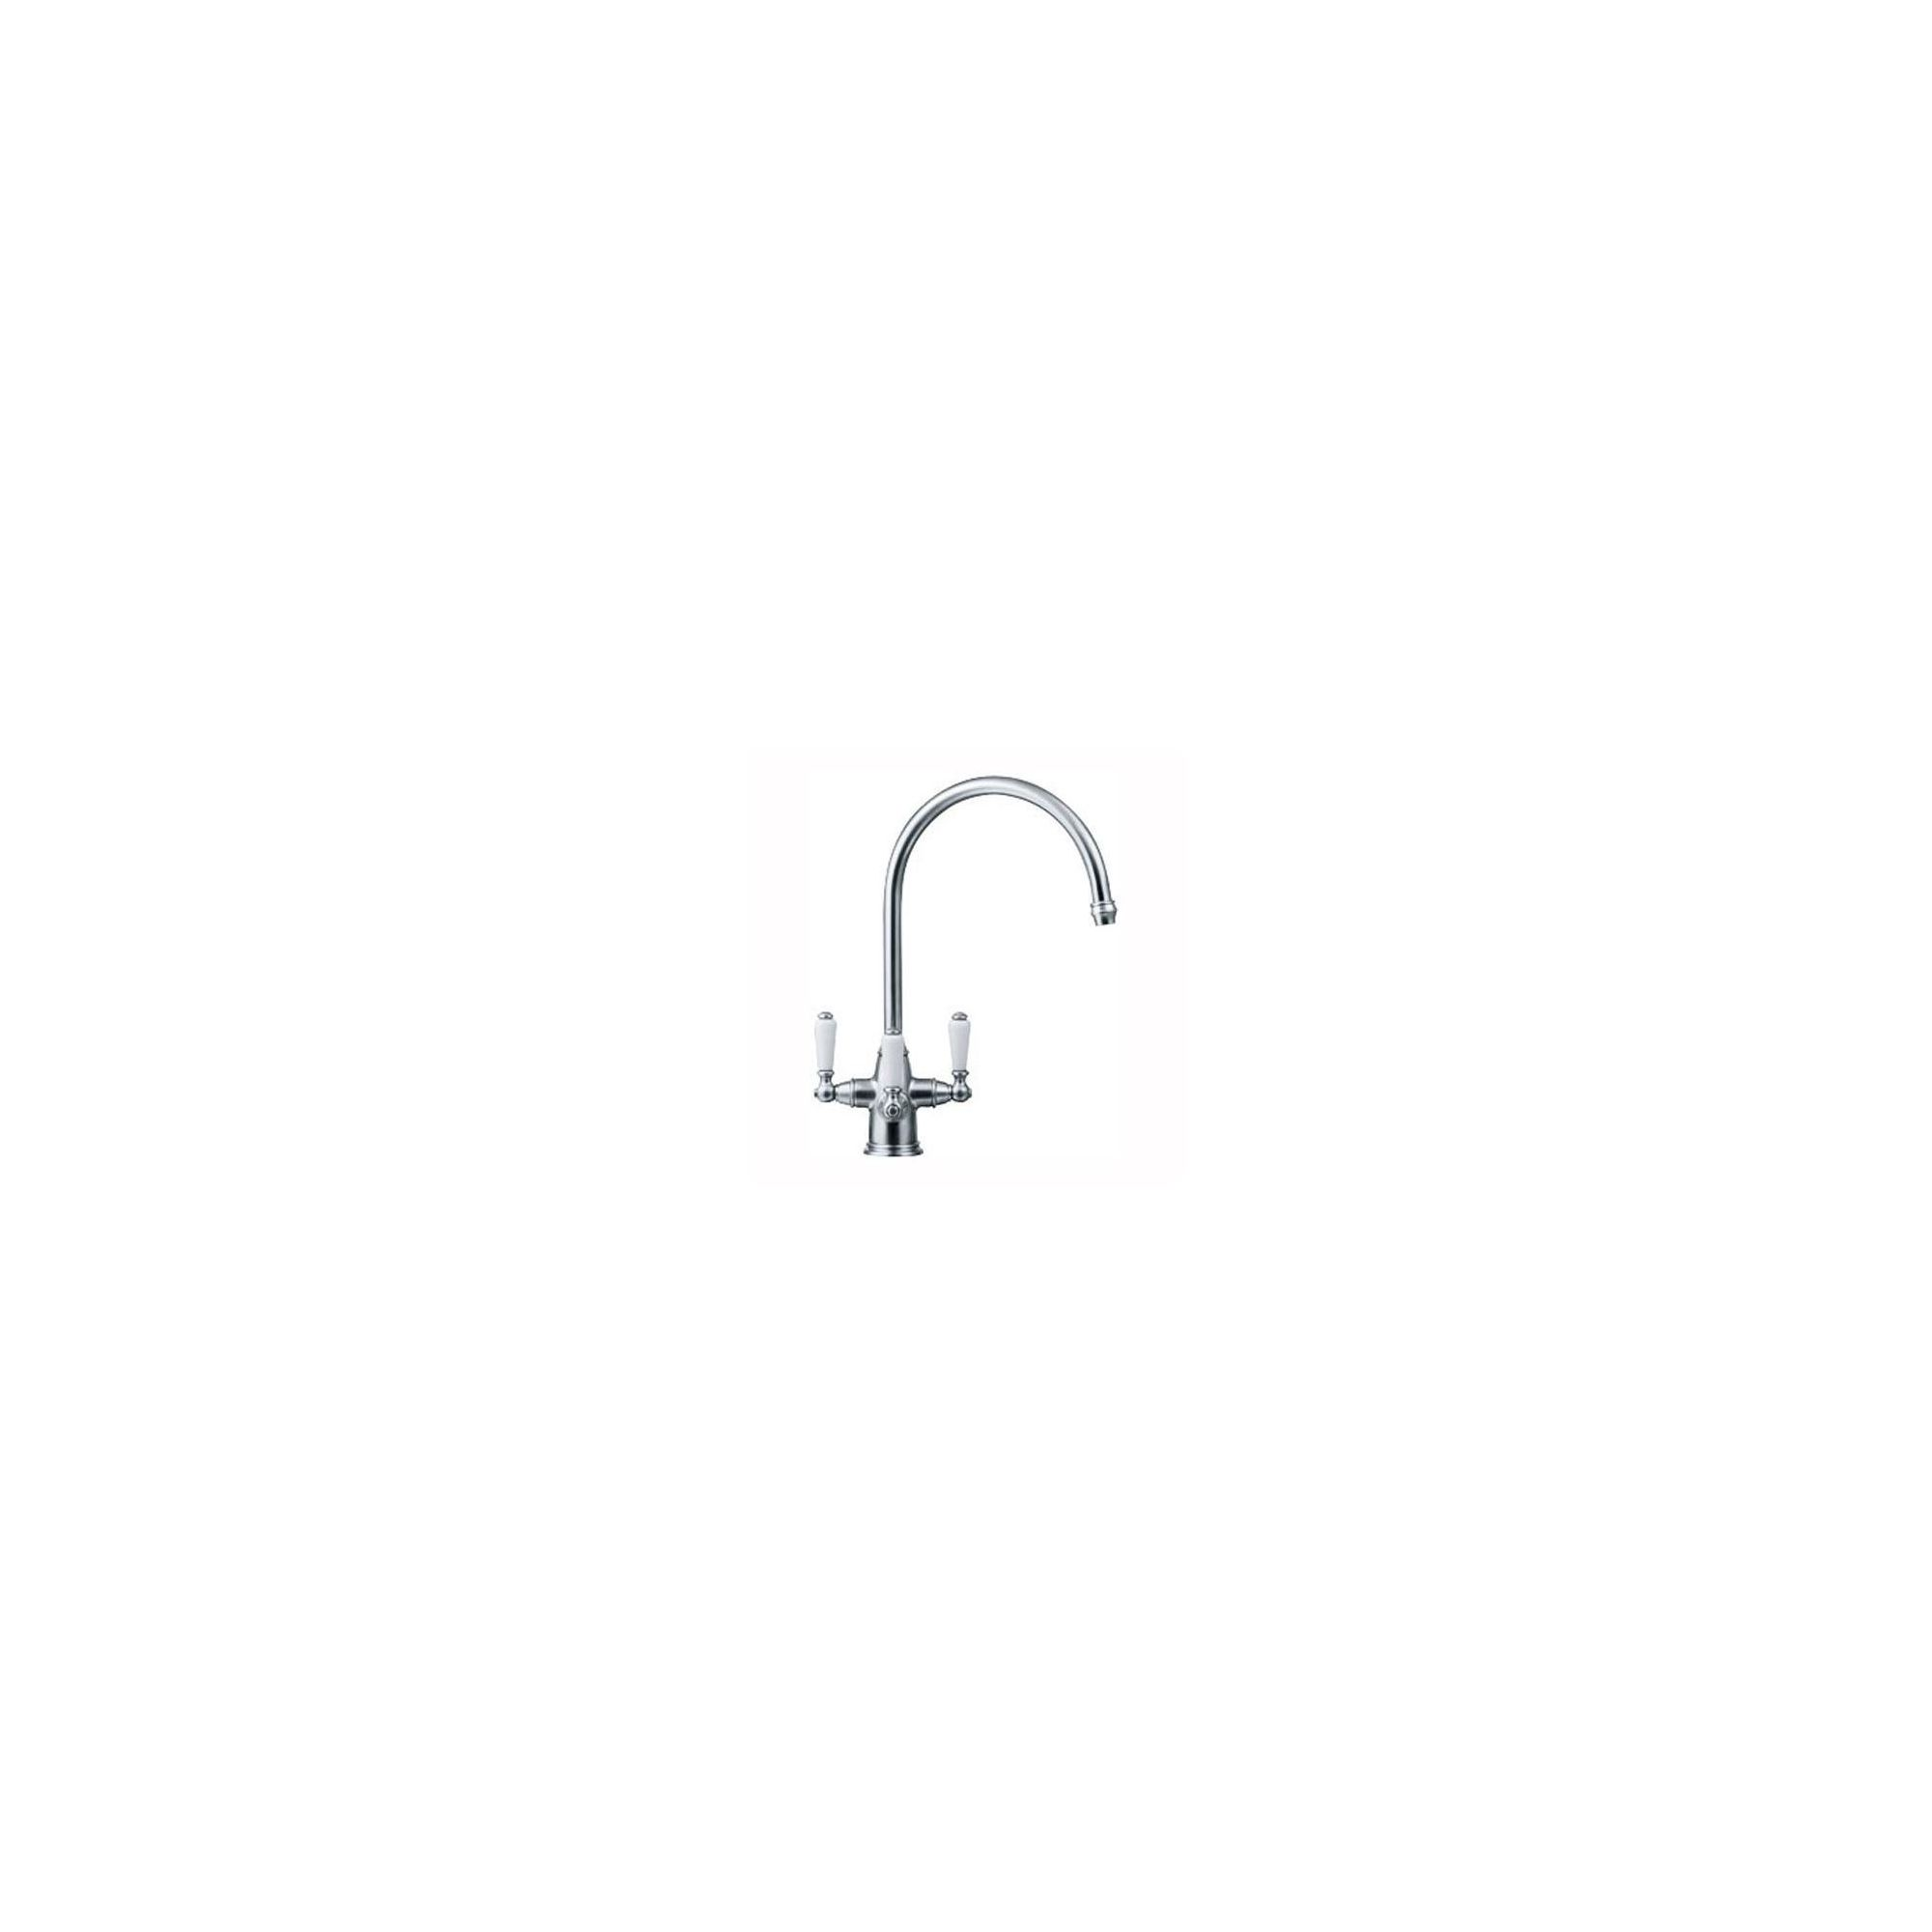 Franke Corinthian Porcelain Handle FilterFlow Kitchen Sink Mixer Tap, Chrome at Tesco Direct